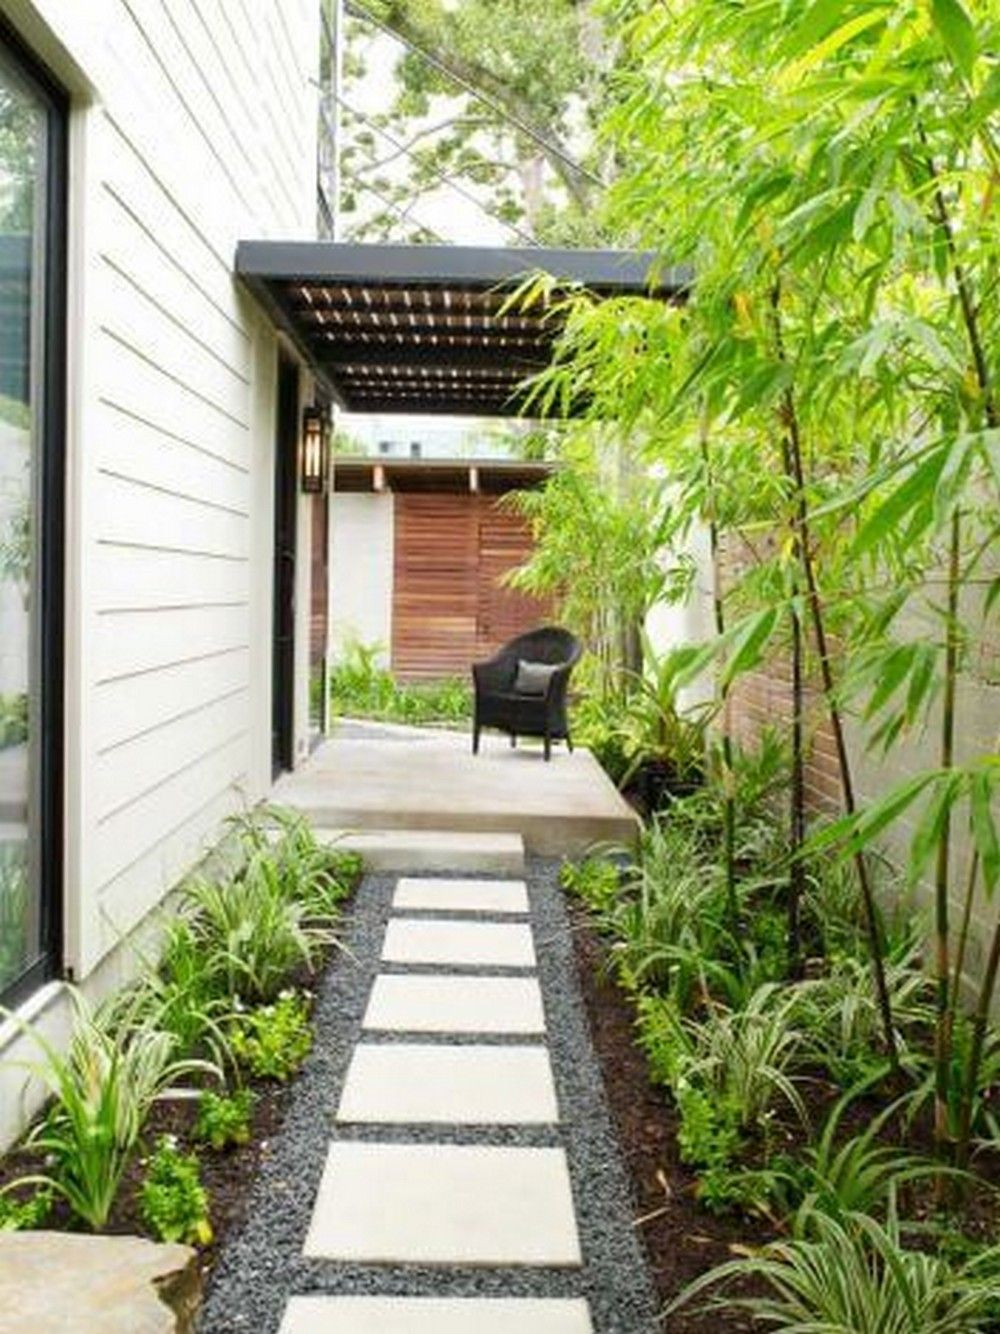 Cheap Landscaping Ideas For Backyard 35 easy, simple and cheap landscape ideas for front yard | front